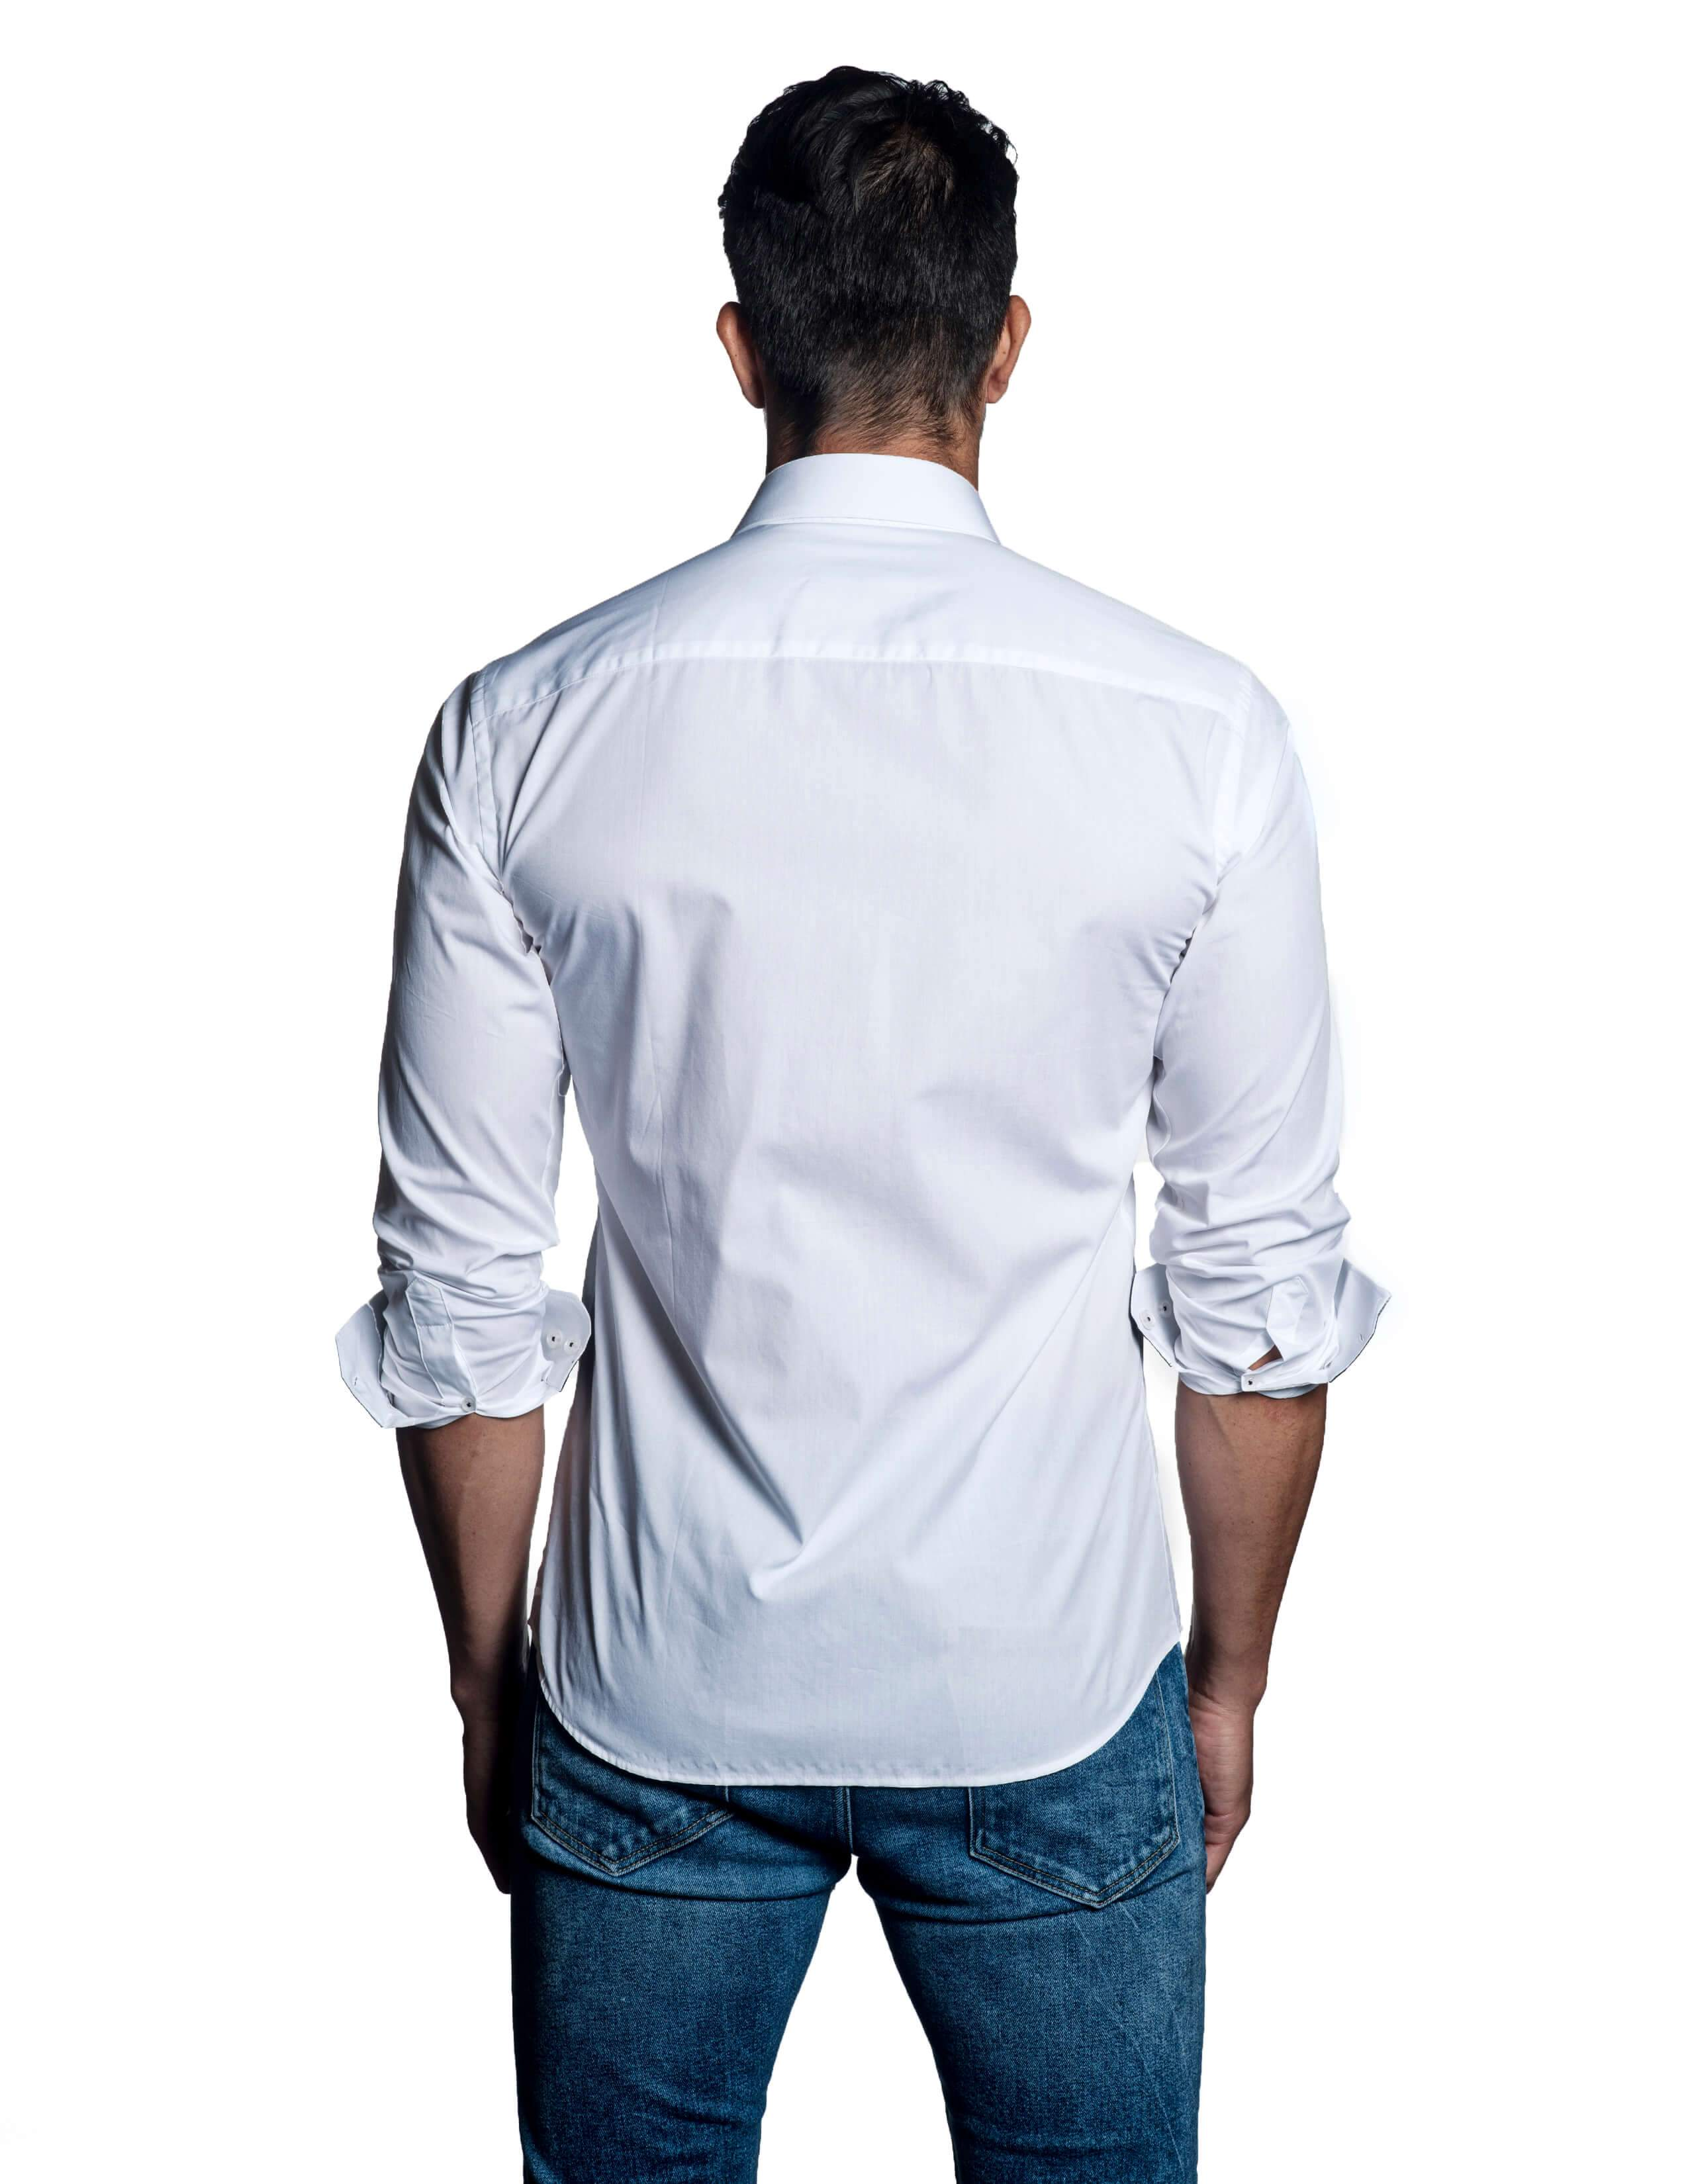 White Shirt for Men - back C-1620 - Jared Lang Collection